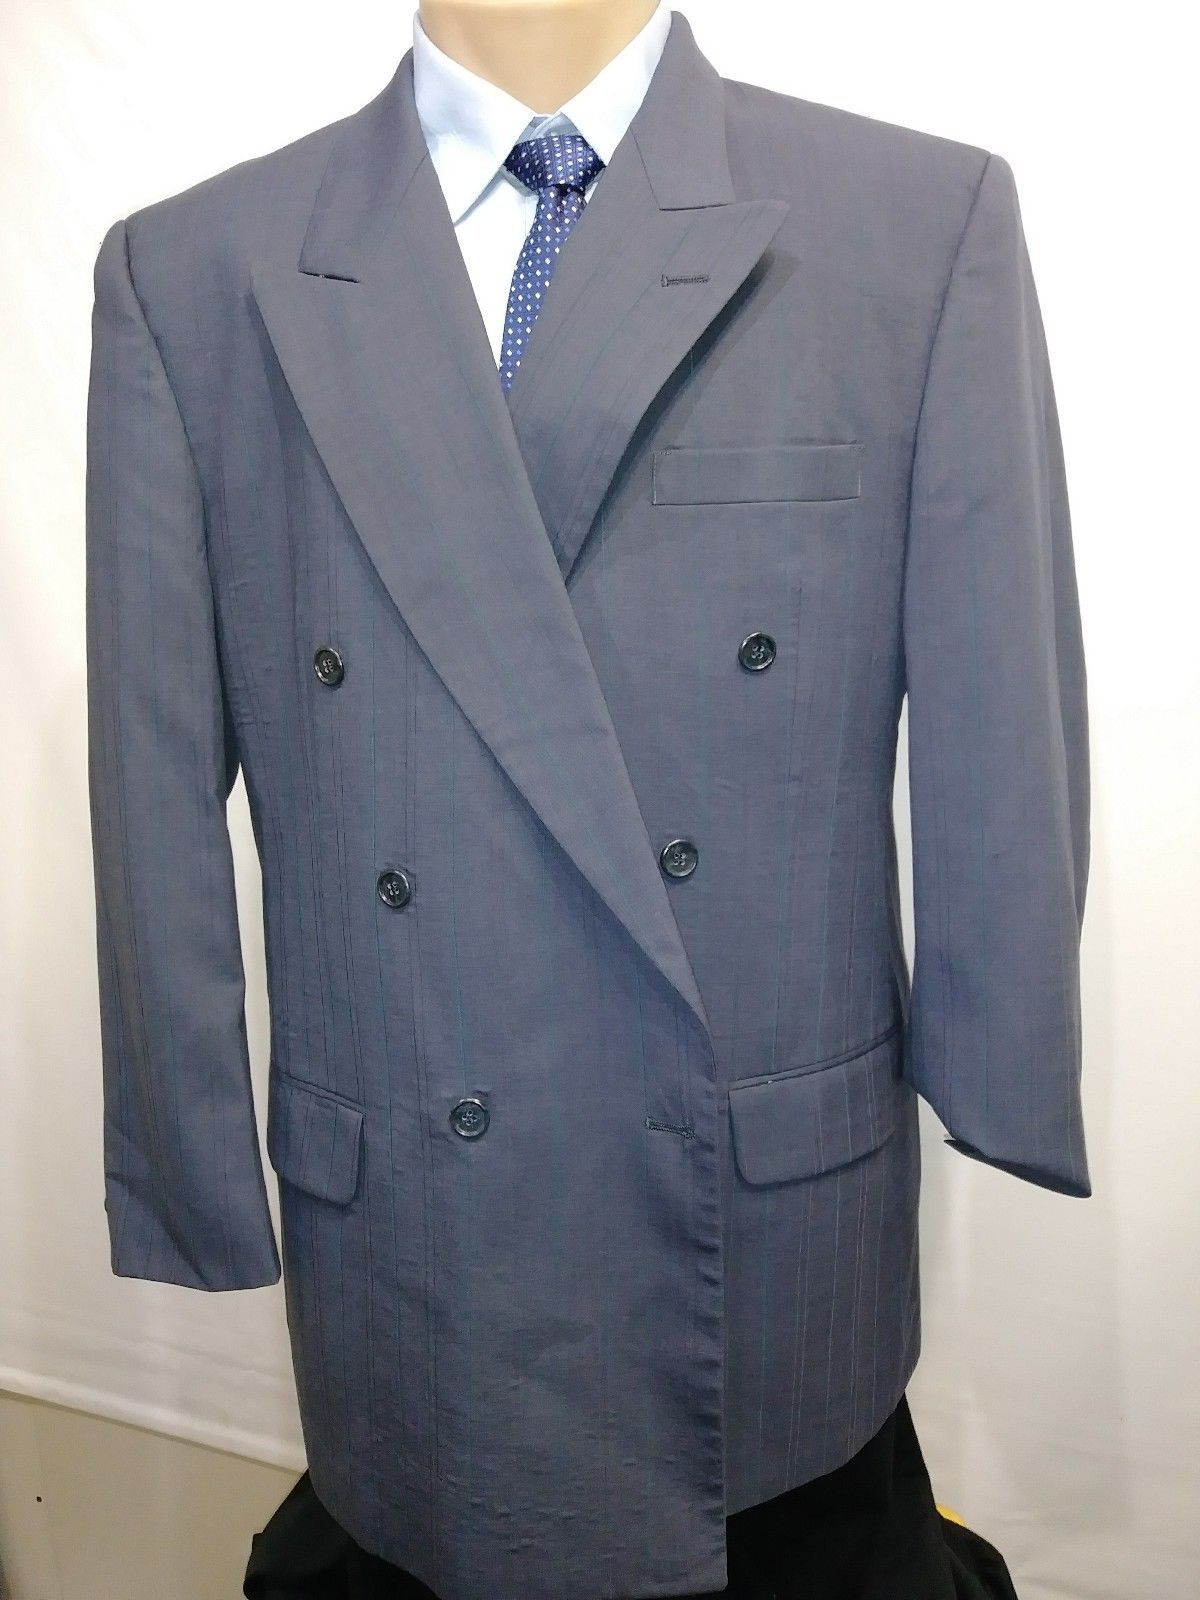 PETROCELLI MENS SPORTS COAT PINSTRIPE 100% WOOL BLU DOUBLE BREASTED 42R RN39566